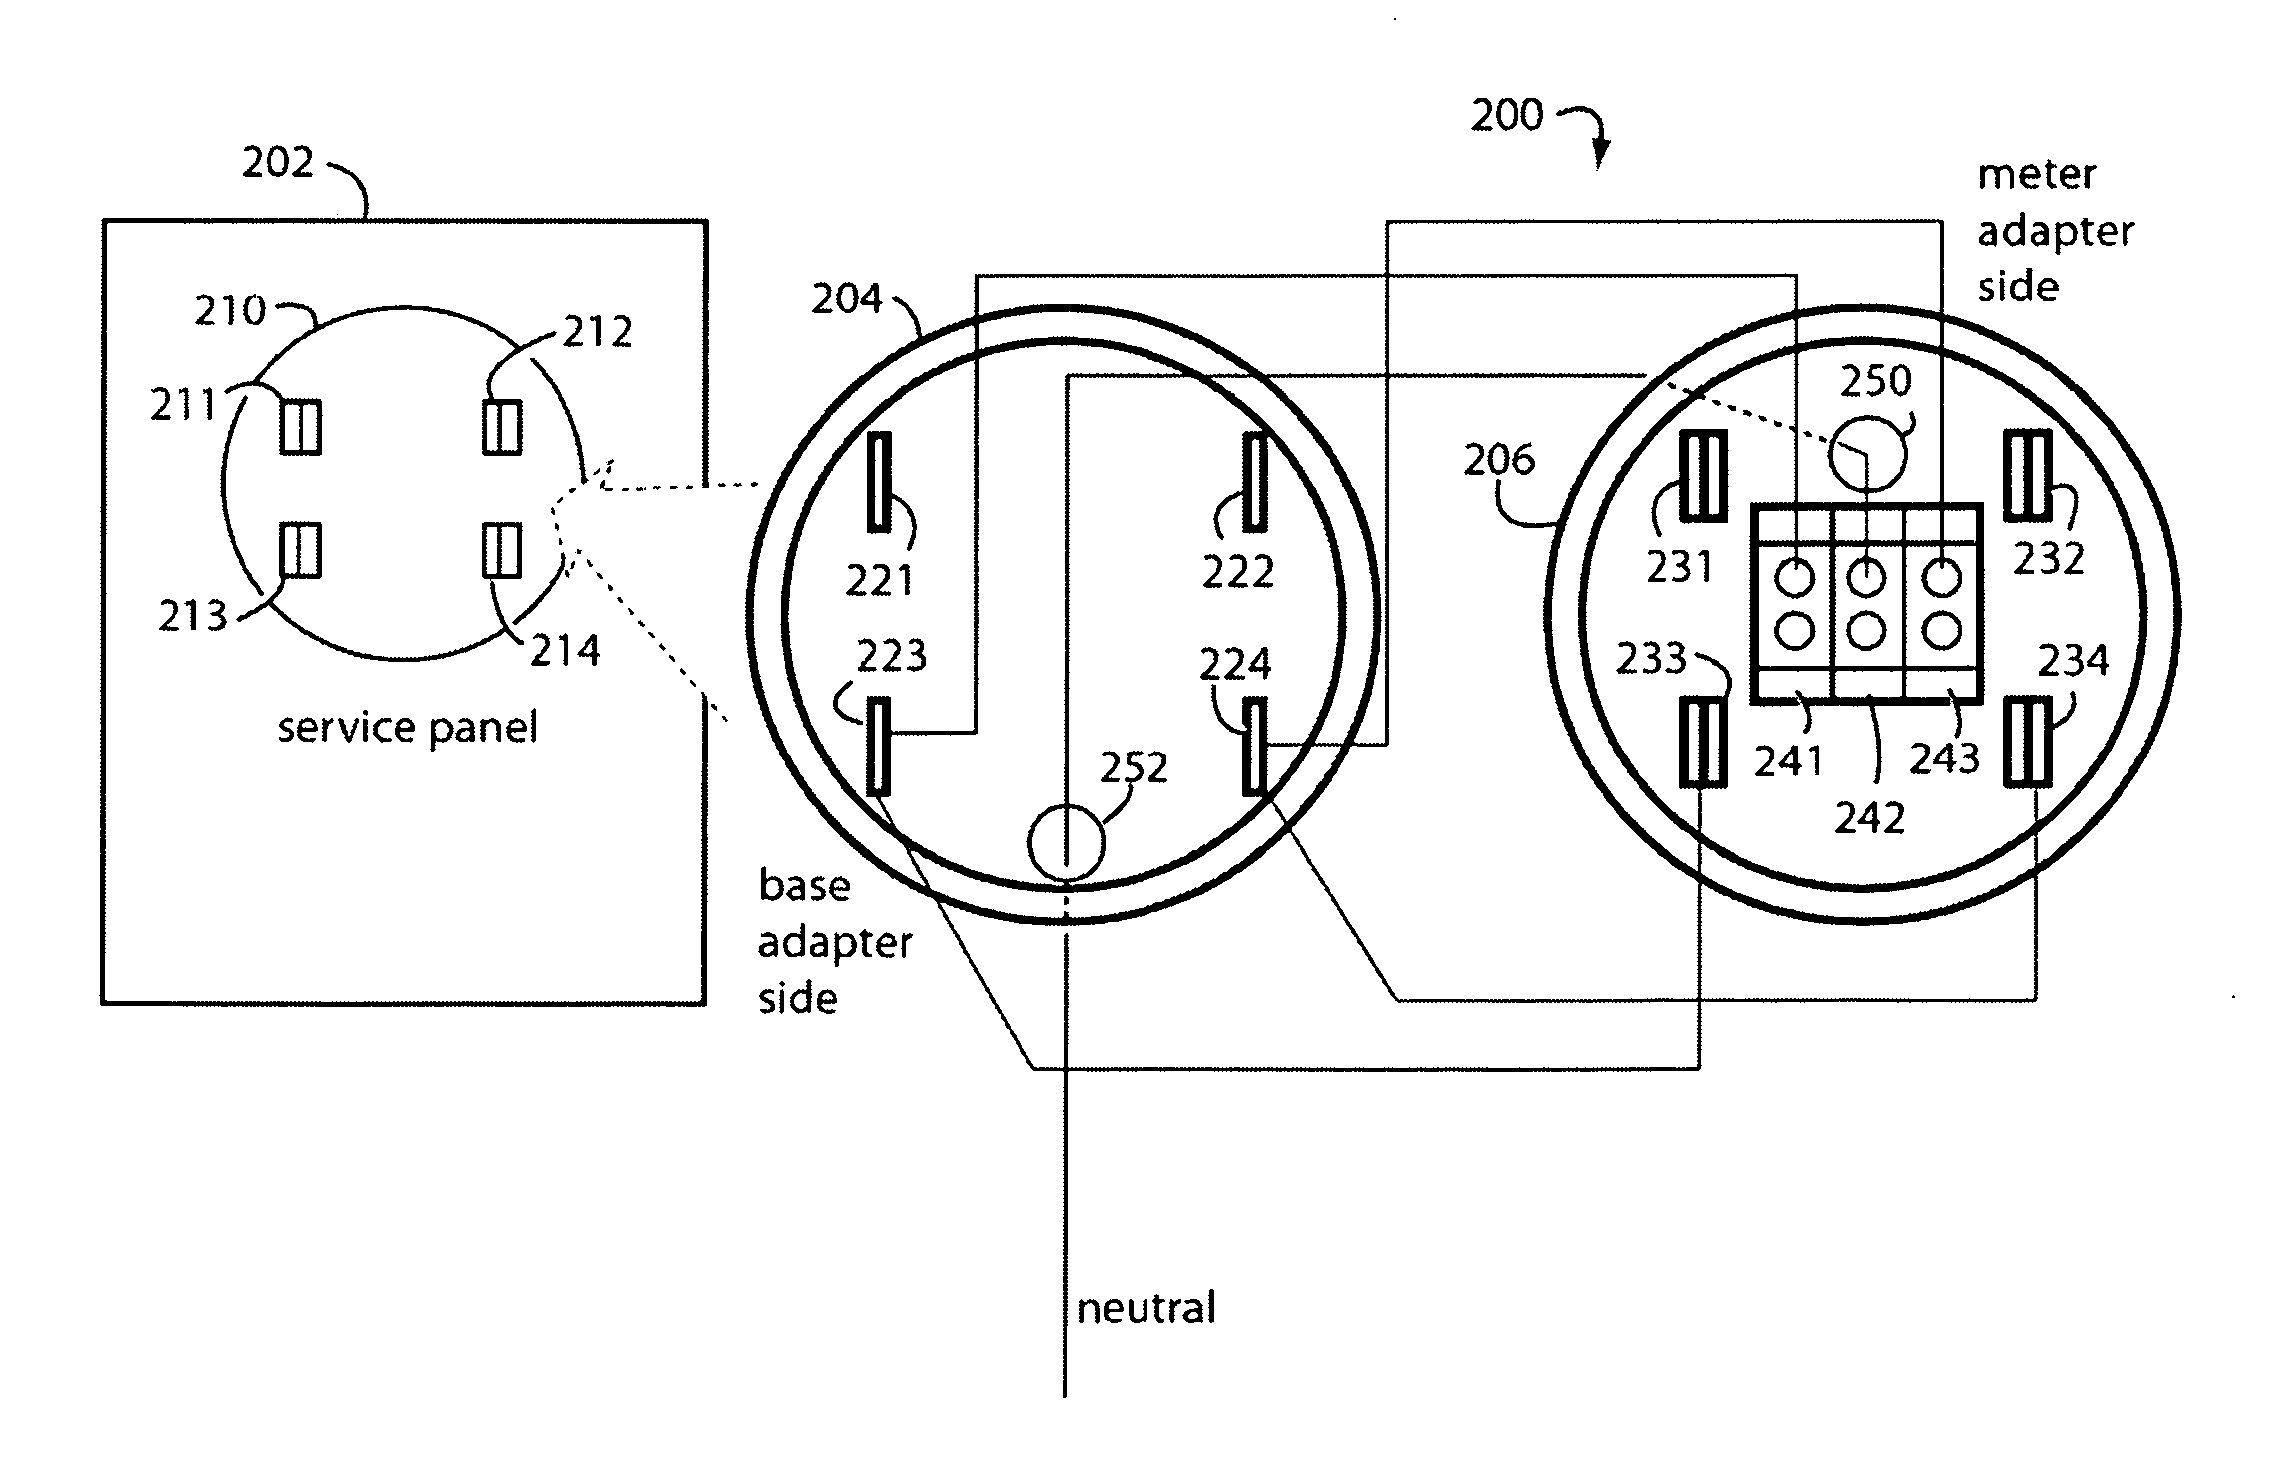 US20100003848A1 20100107 D00000 patent us20100003848 supply side backfeed meter socket adapter meter socket diagram at readyjetset.co